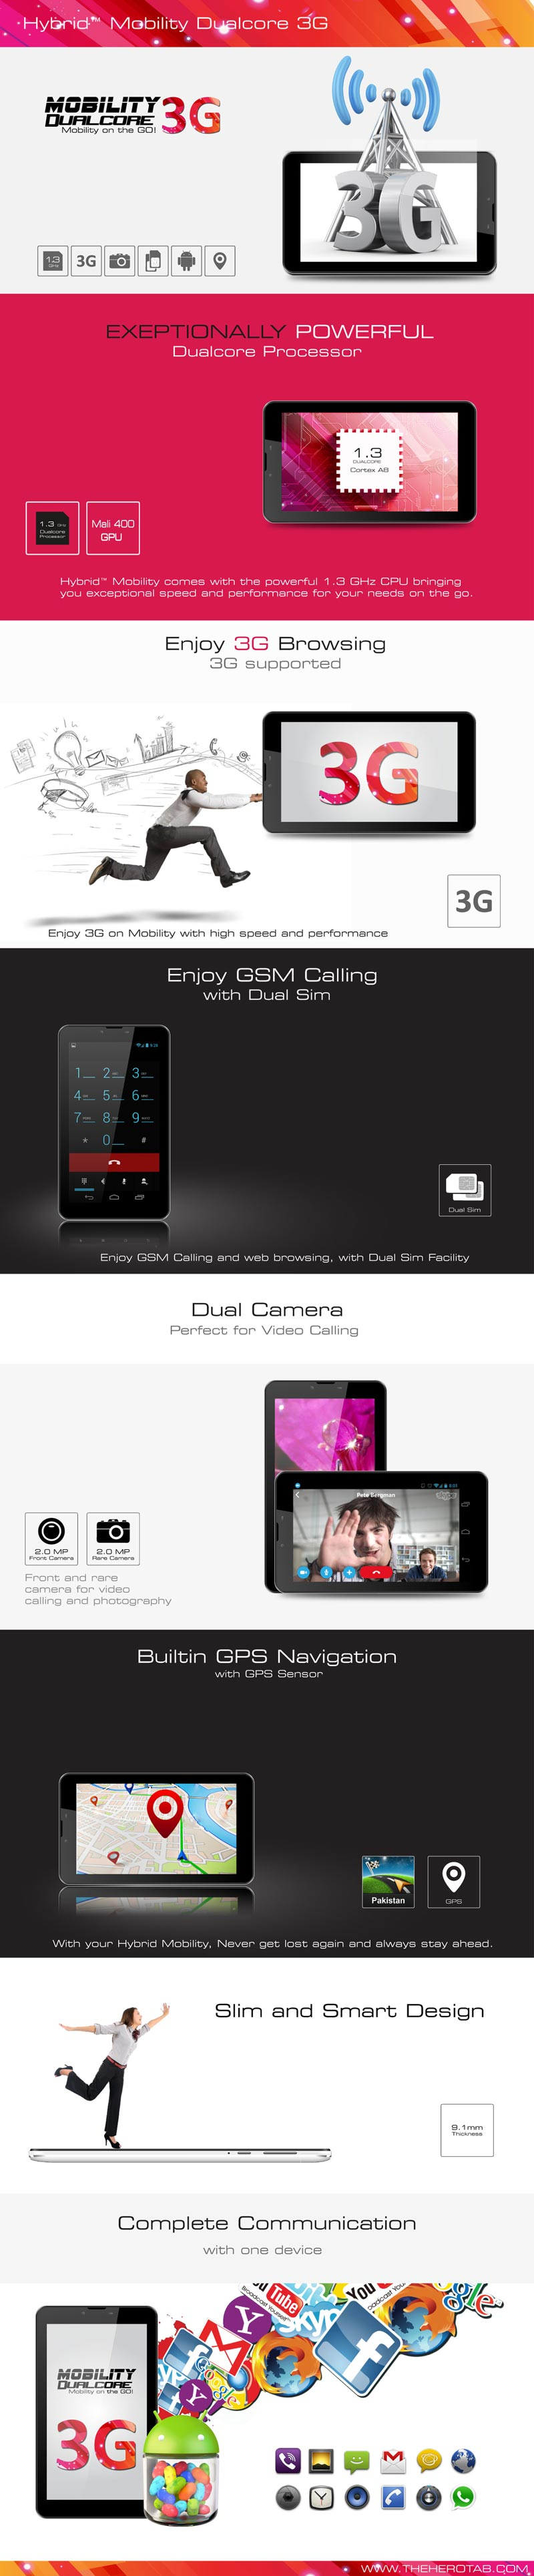 mobility-dual-core-3g